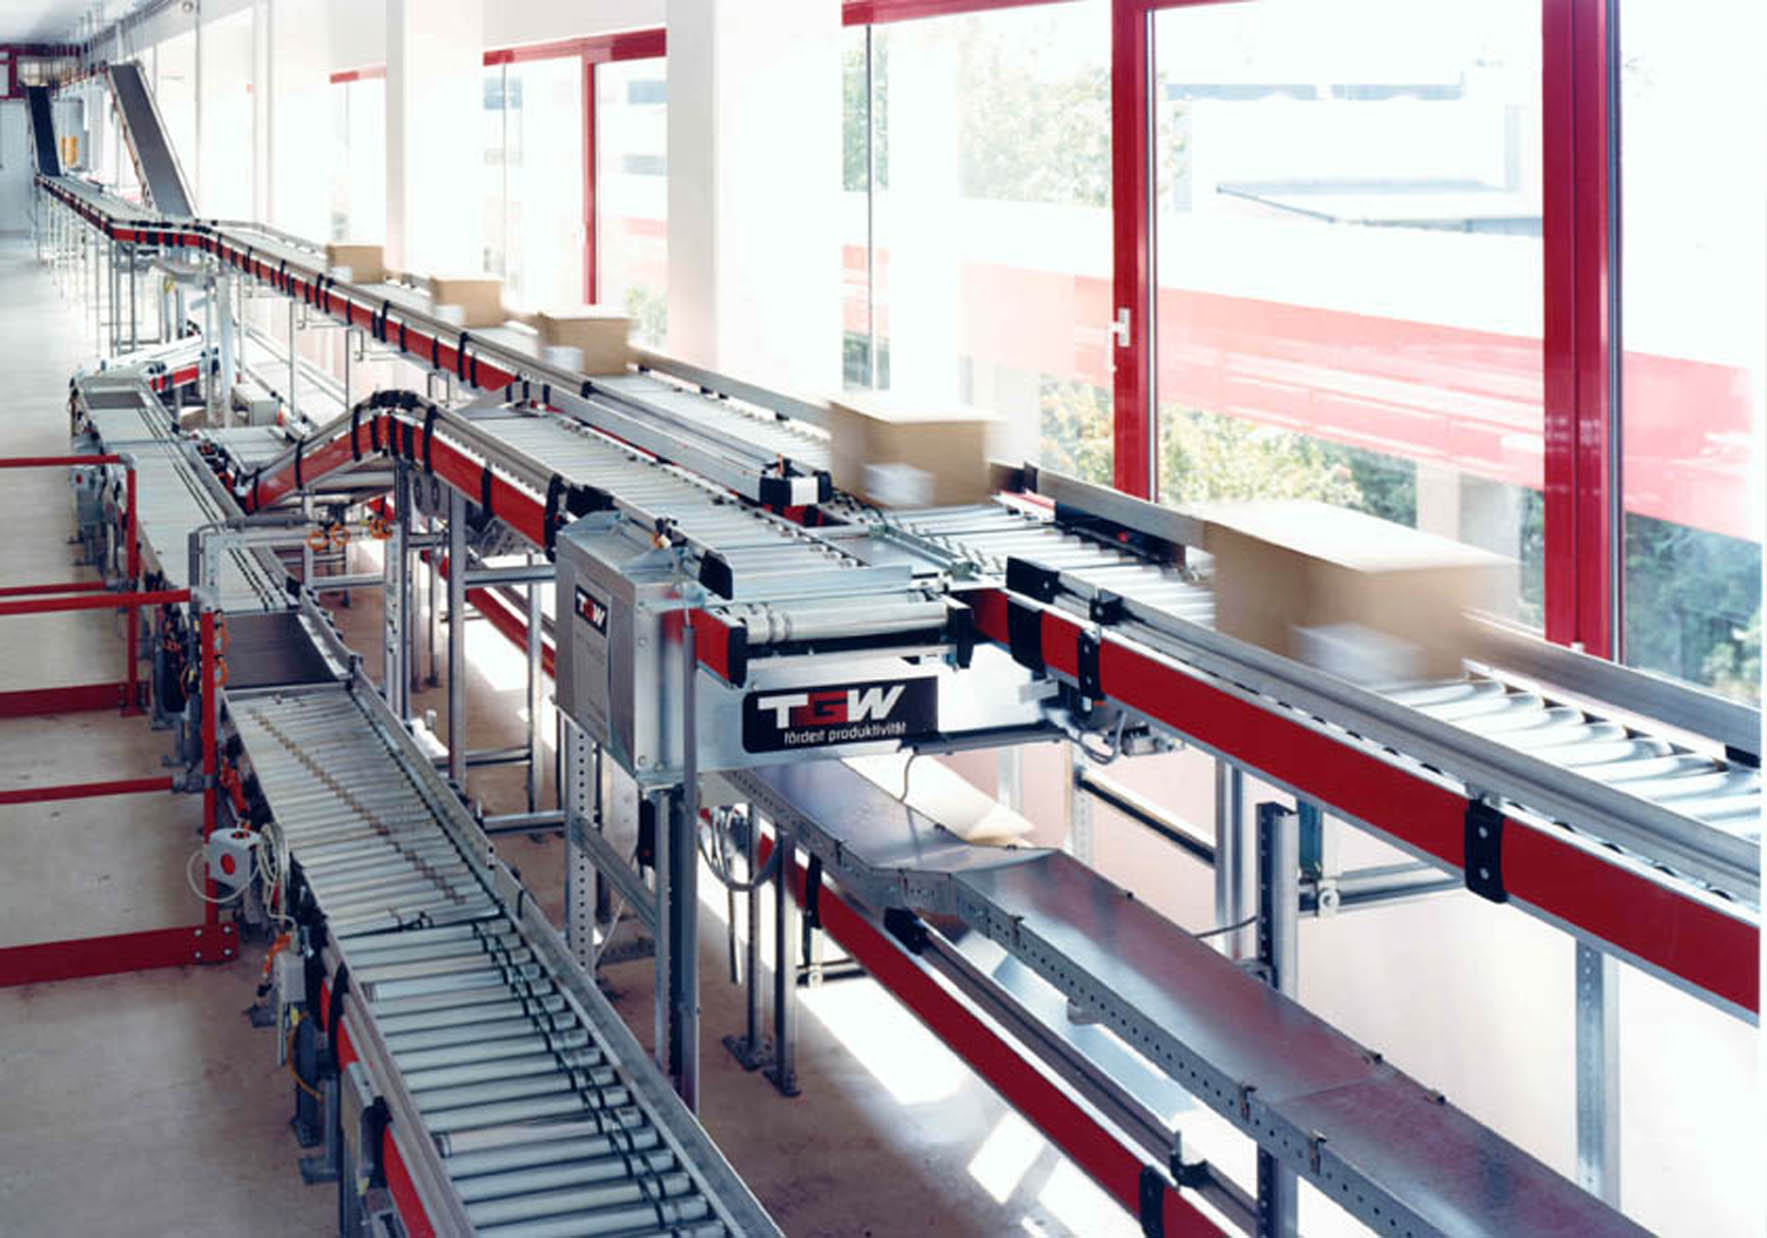 Carton_Conveyor